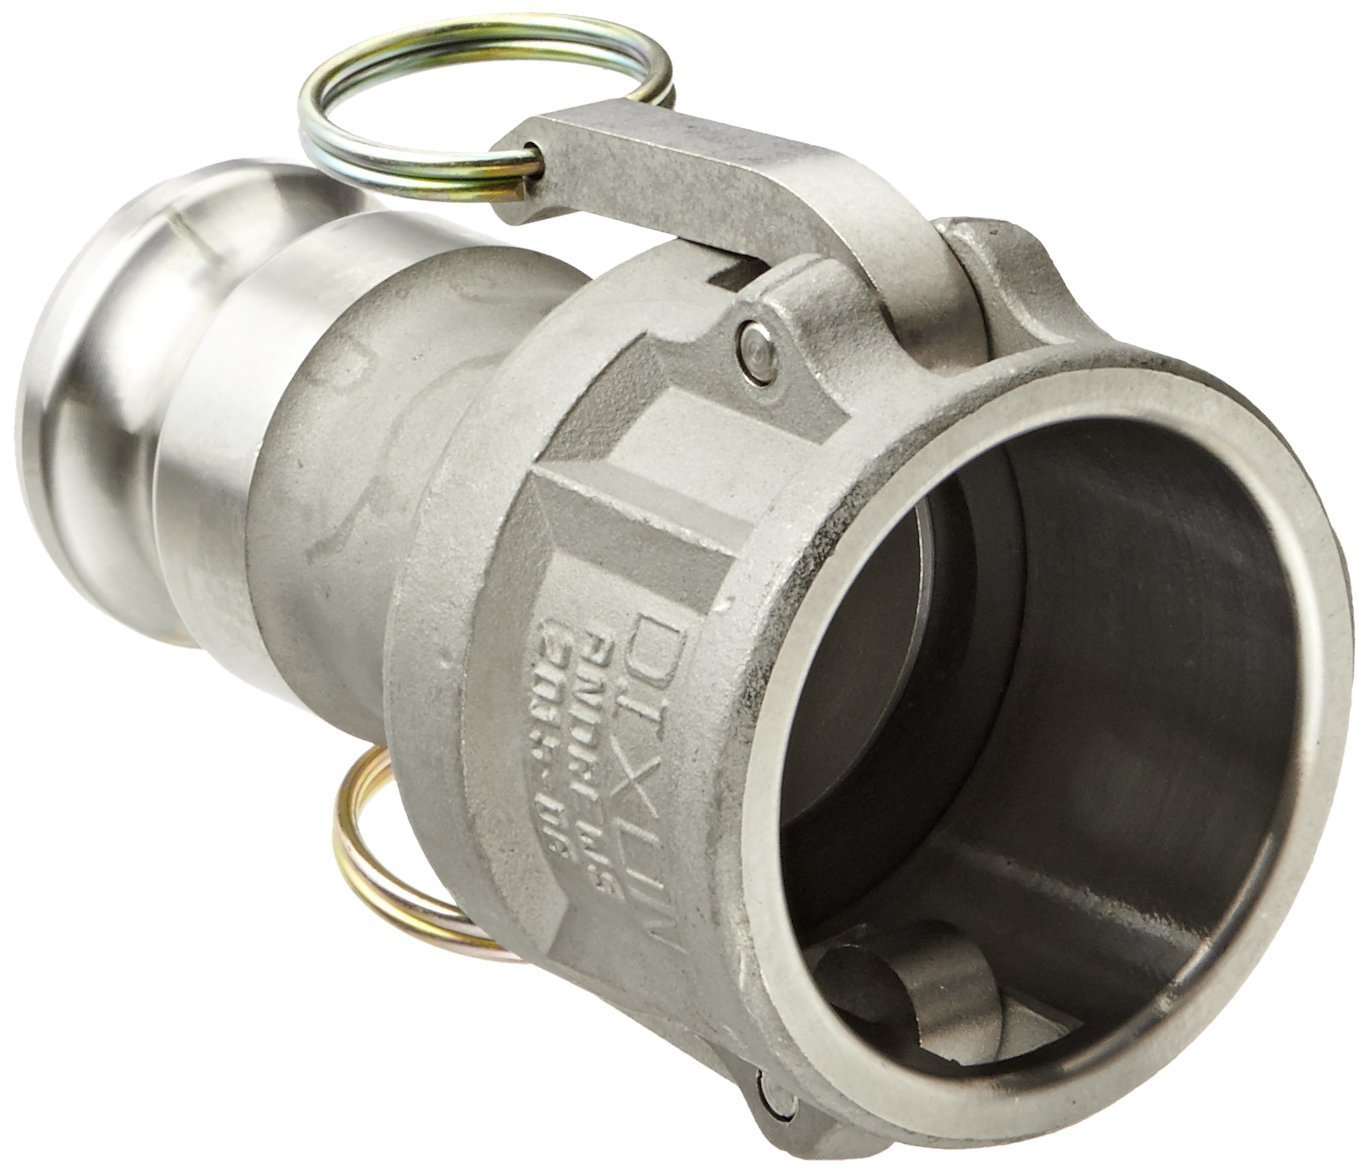 Dixon 2015-DA-SS Stainless Steel 316 Cam and Groove Reducing Hose Fitting, 2'' Socket x 1-1/2'' Plug